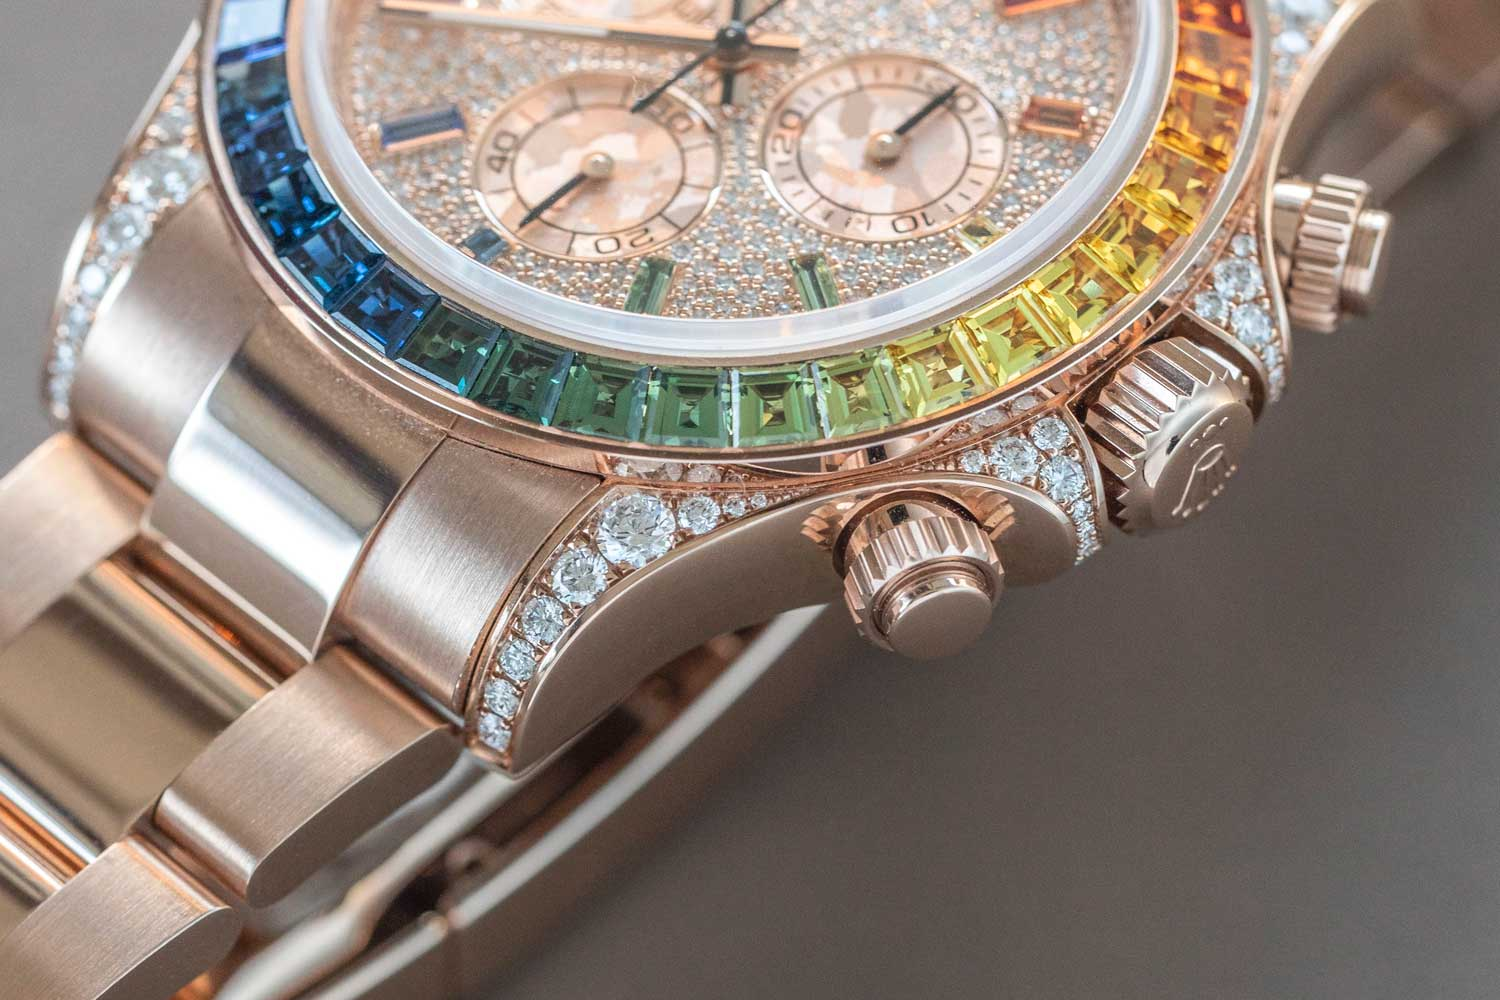 The Rolex Daytona ref. 116595 RBOW with the Everose case and the full diamond pave dial (©Revolution)